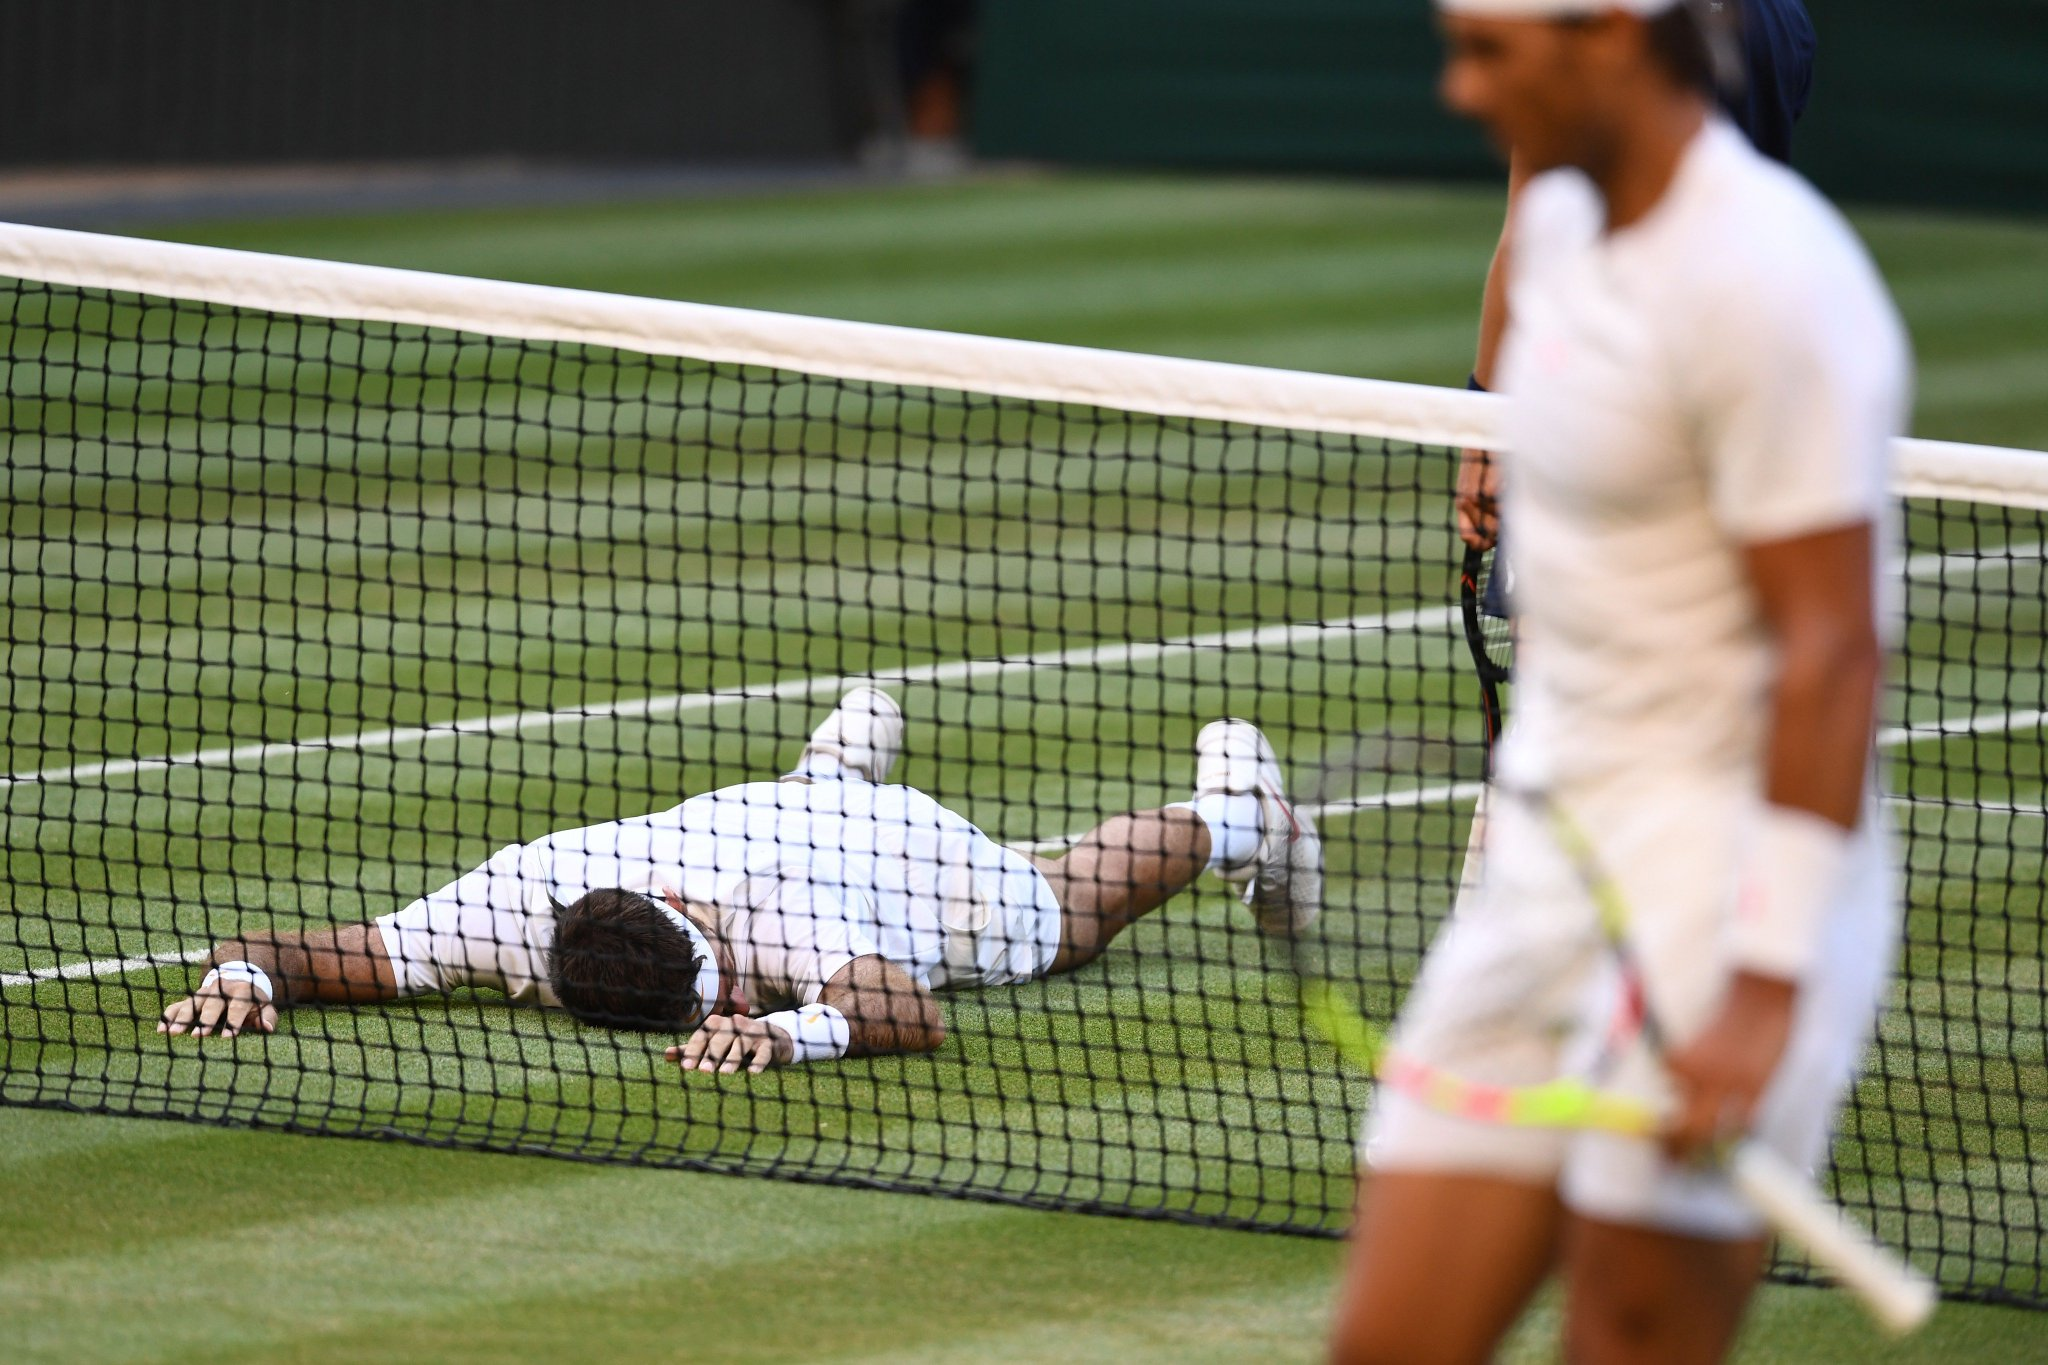 Today's roller-coaster of emotions got us like ����  #Wimbledon @delpotrojuan https://t.co/y3iYRxIXvy